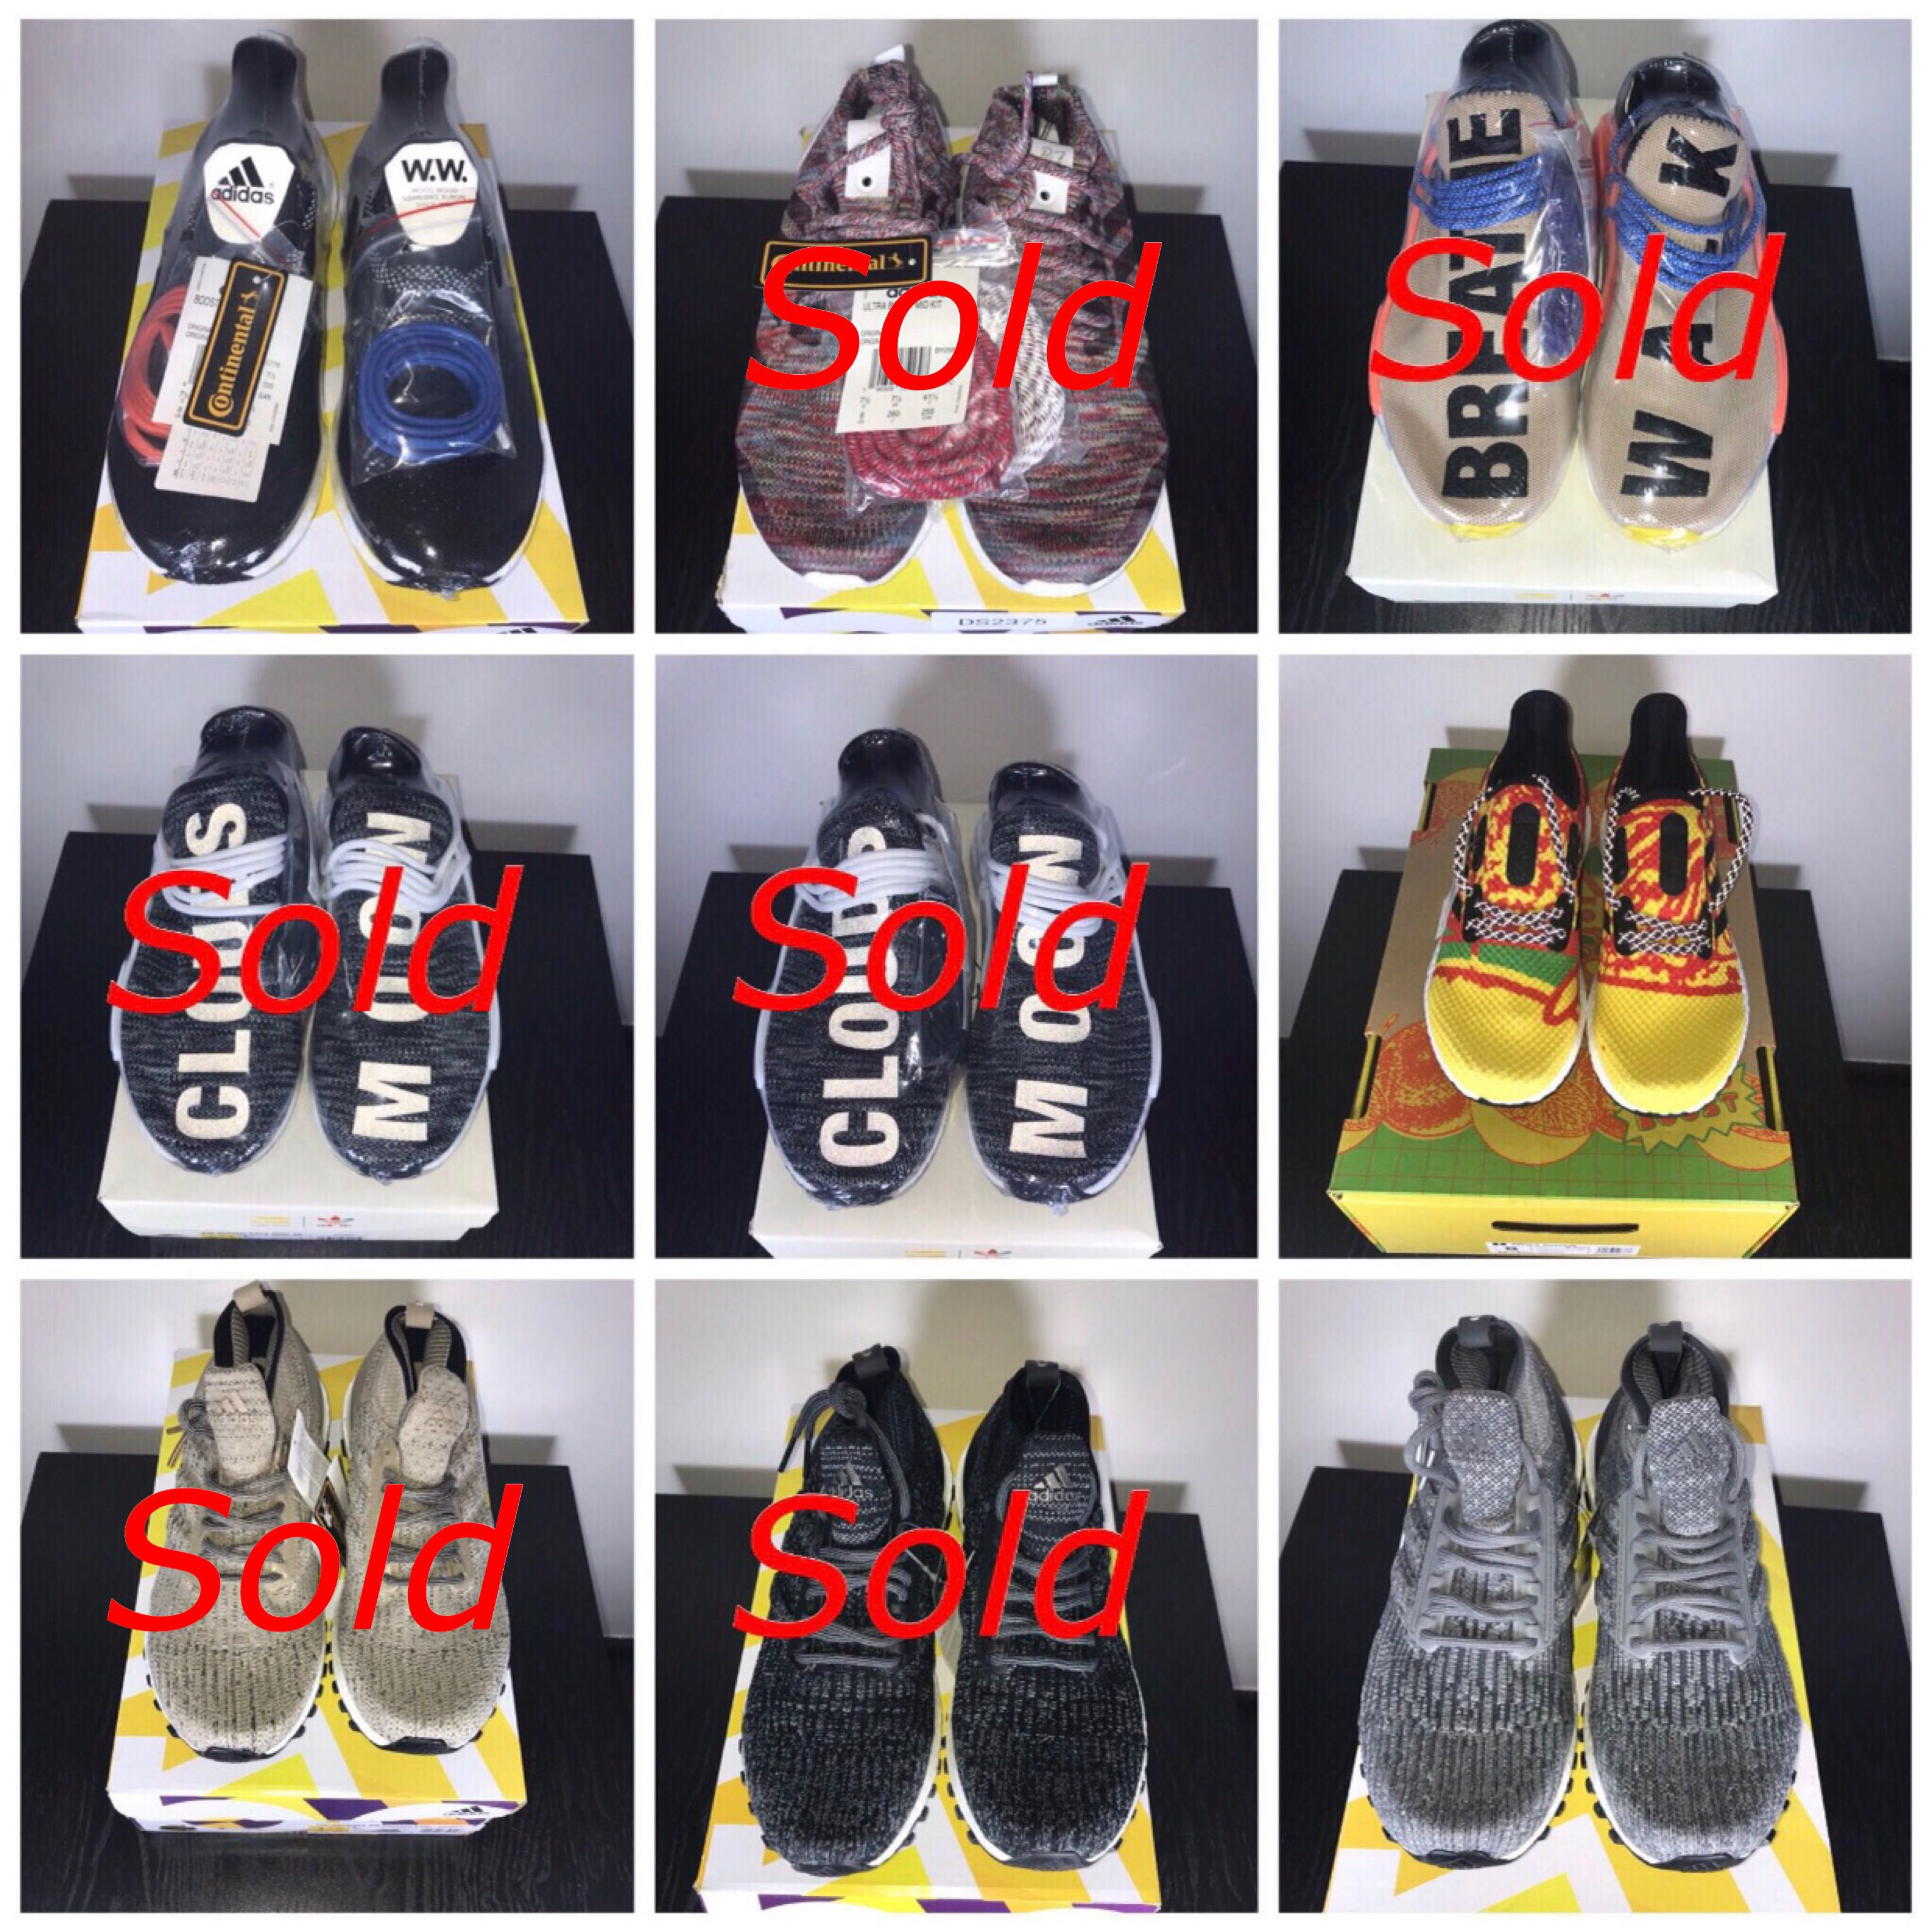 3e1a9650bf1b8 Adidas - Ultra Boost Wood Wood KITH ATR NMD PW TR Pale Nude Oreo ...